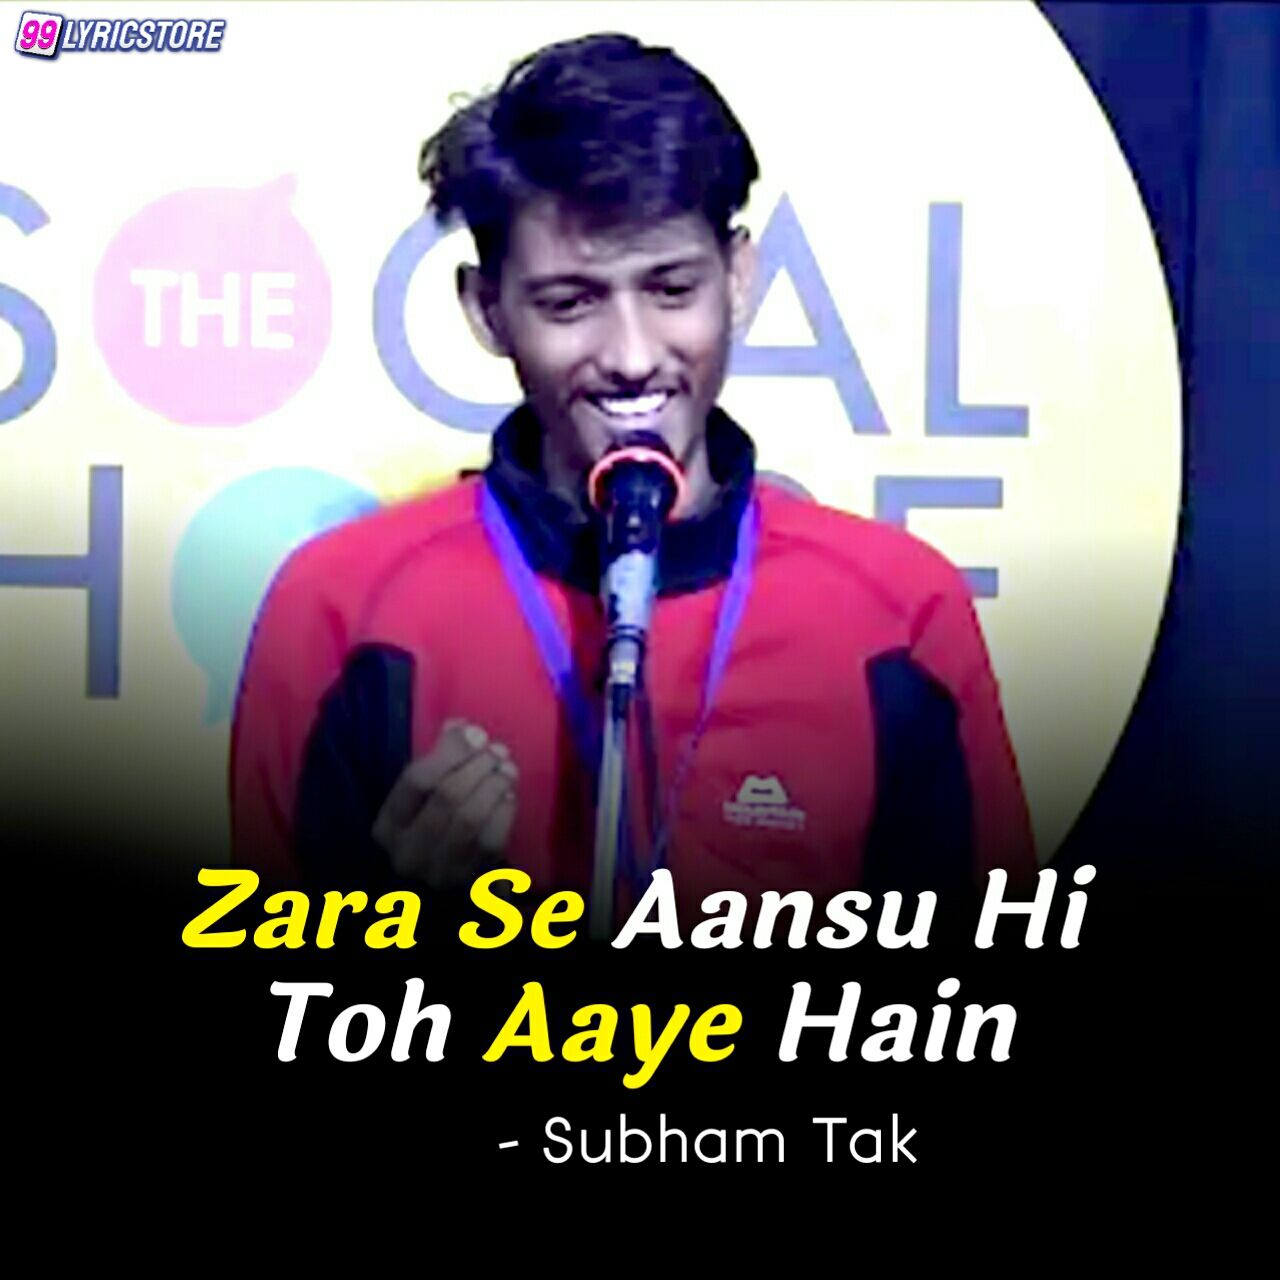 'Zara Se Aansu Hi Toh Aaye Hain' Poetry has written and performed by Shubham Tak on The Social House's Plateform.